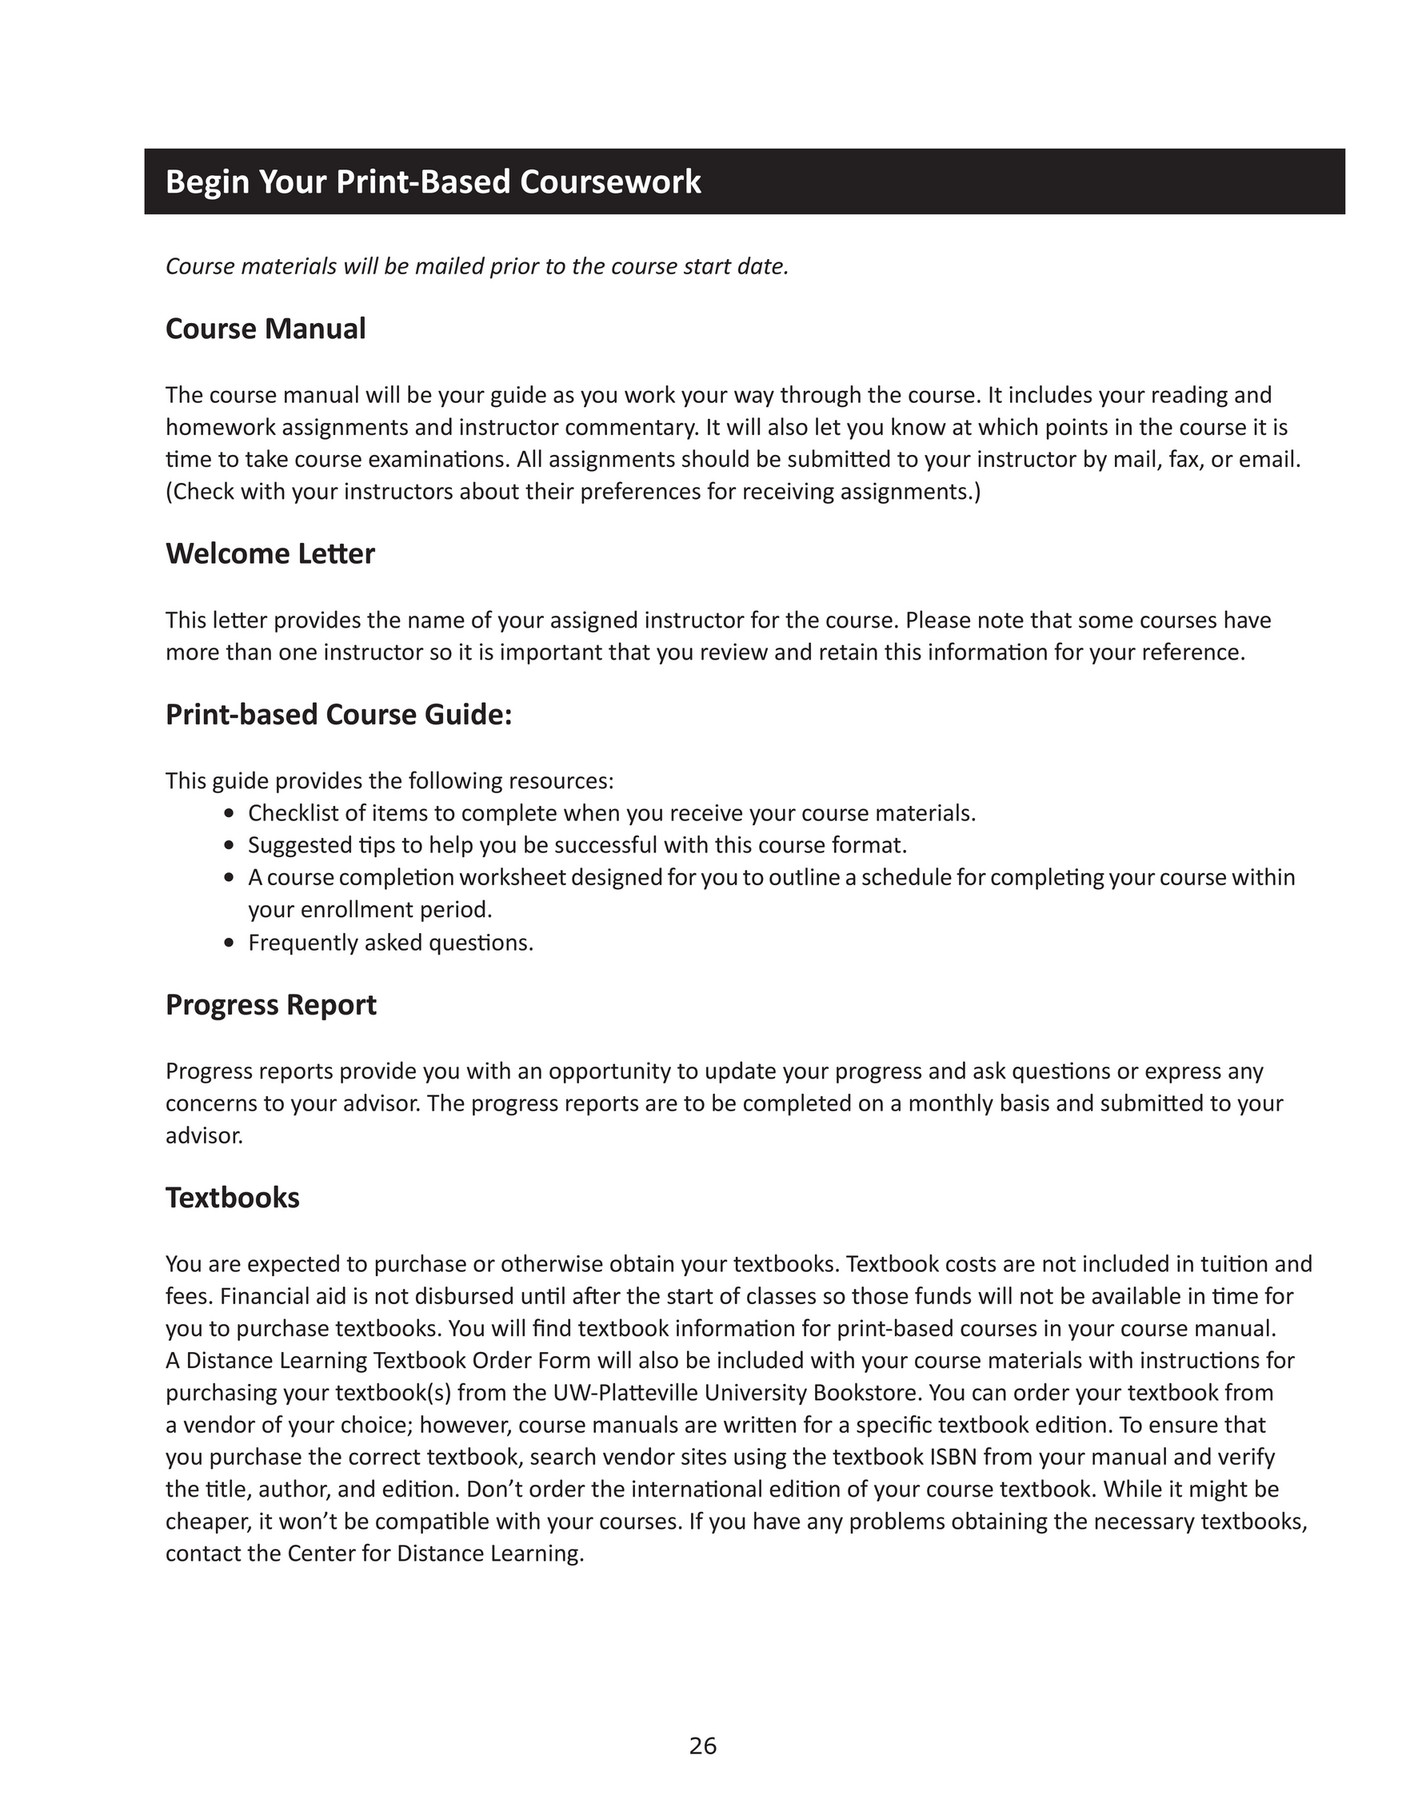 Order theater studies literature review